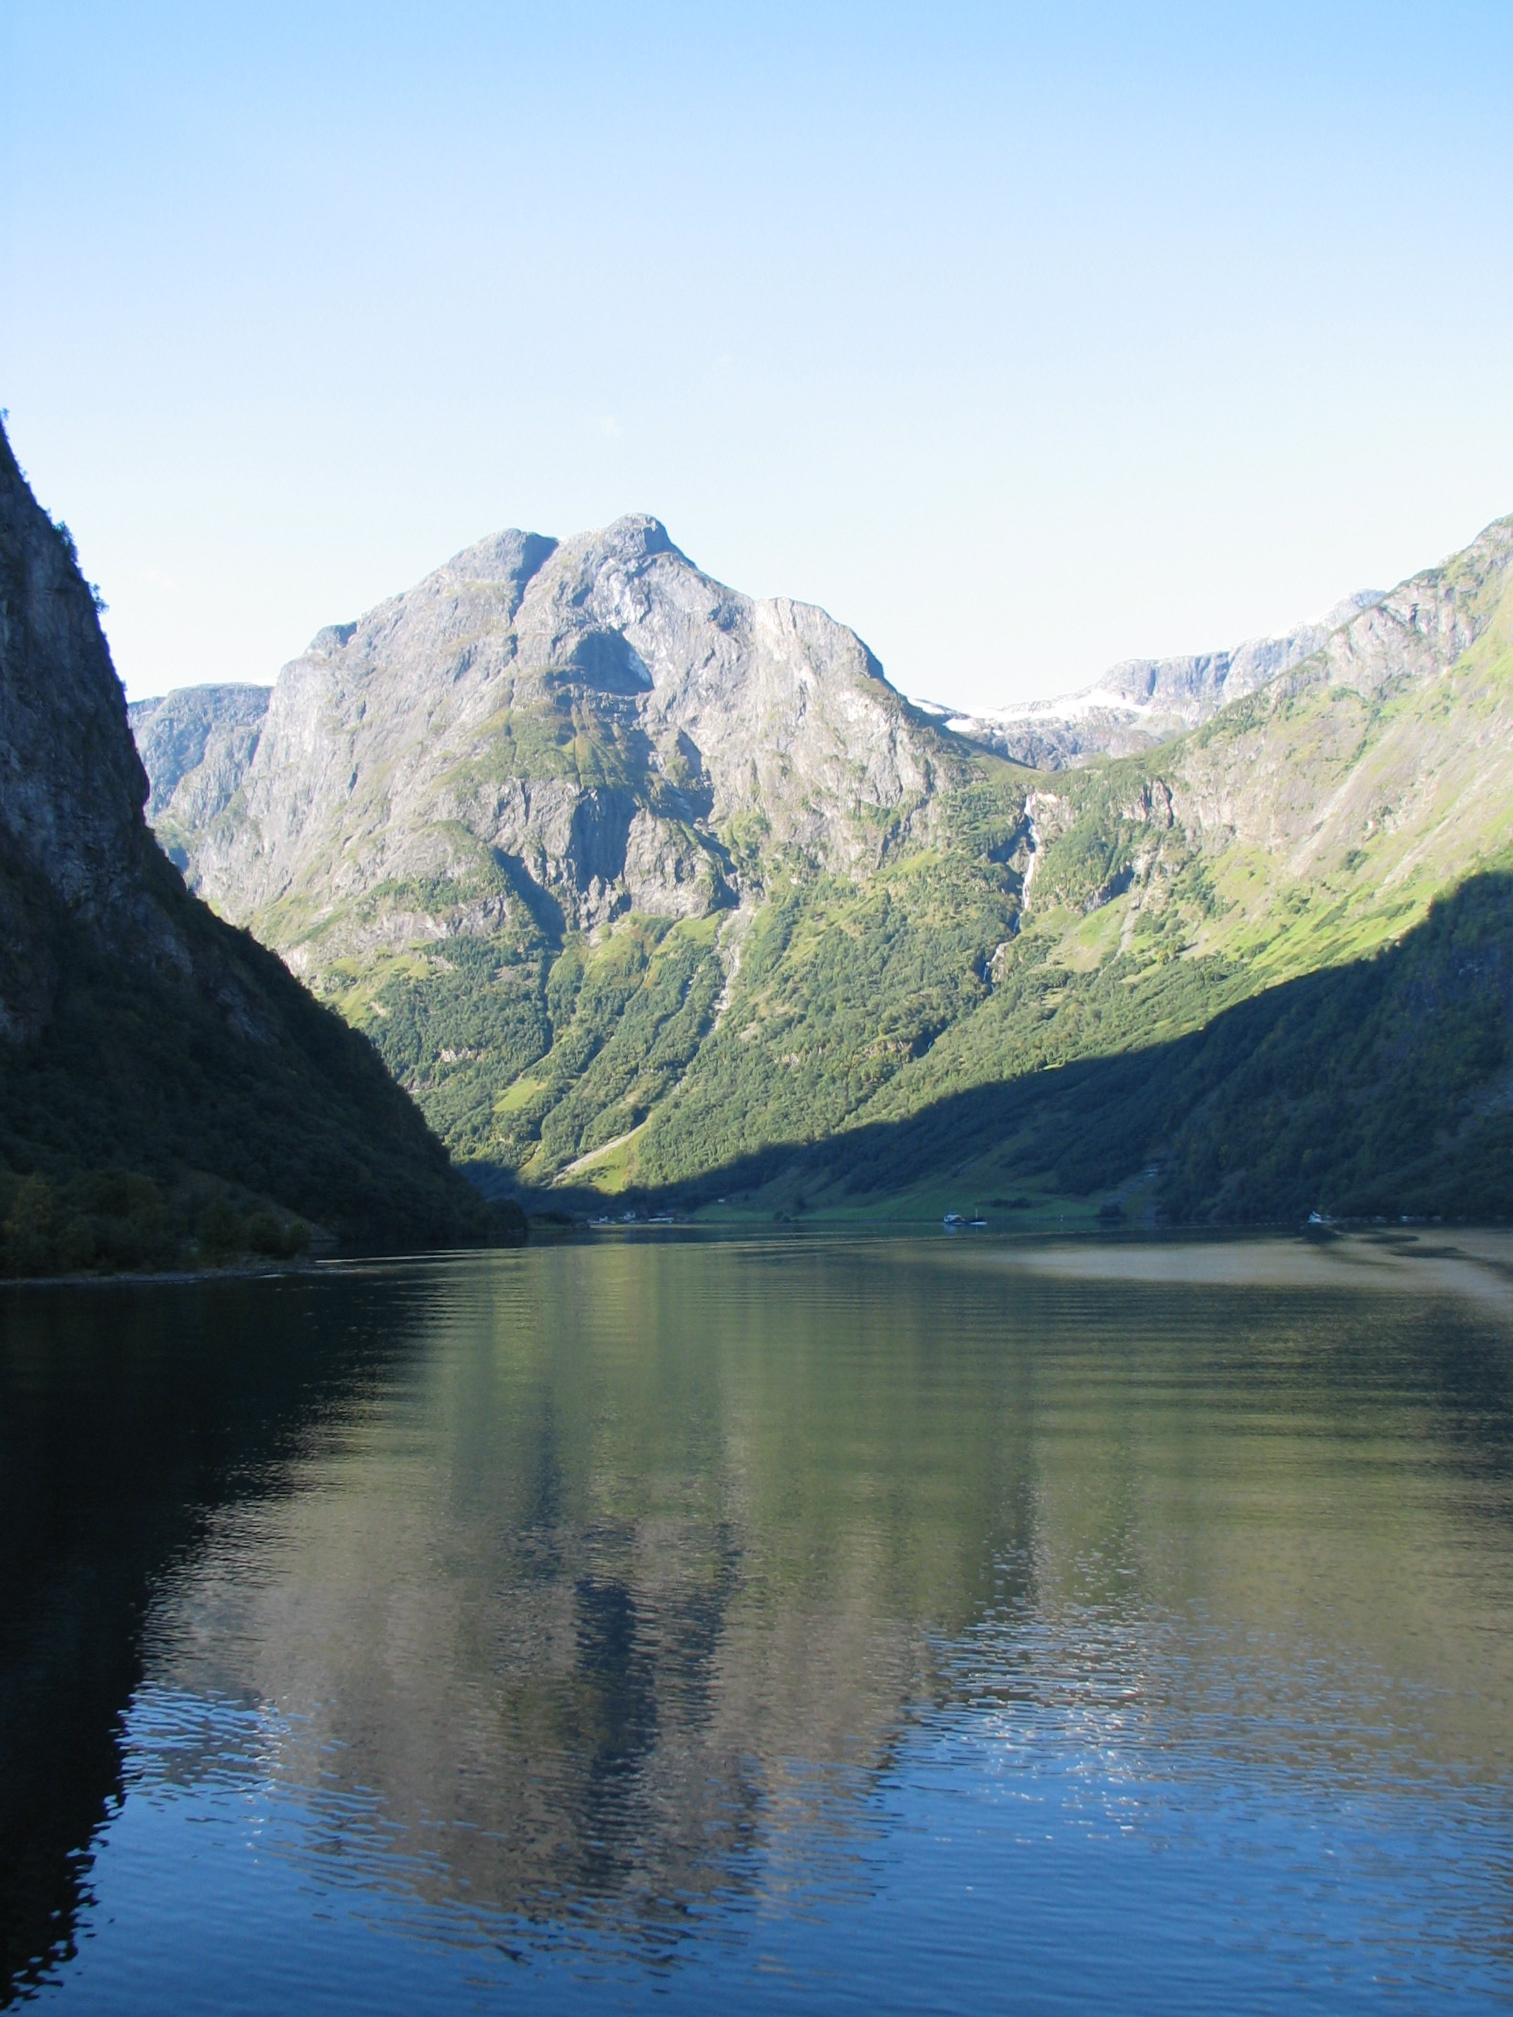 A more classic view from Nærøyfjord (pronounced NAIR-oy-fiord)